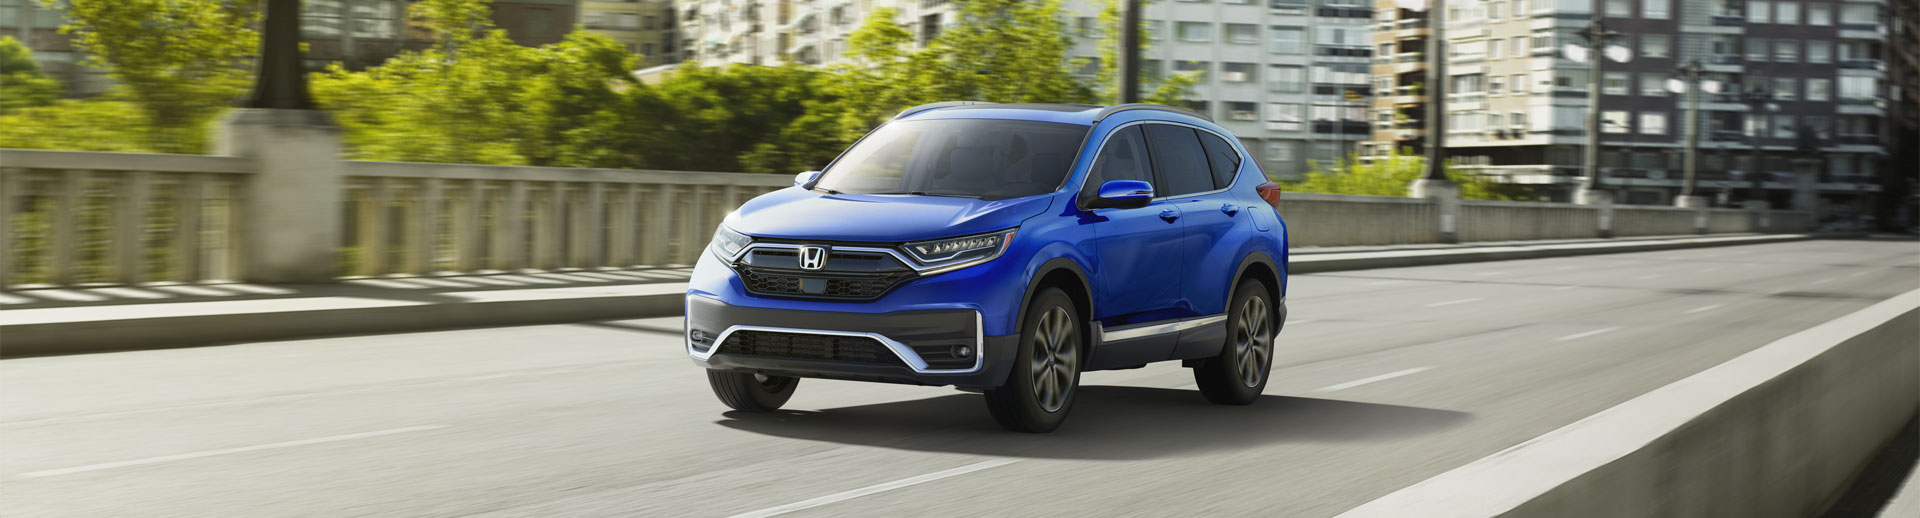 2020 Honda CR-V Lifestyle Photo